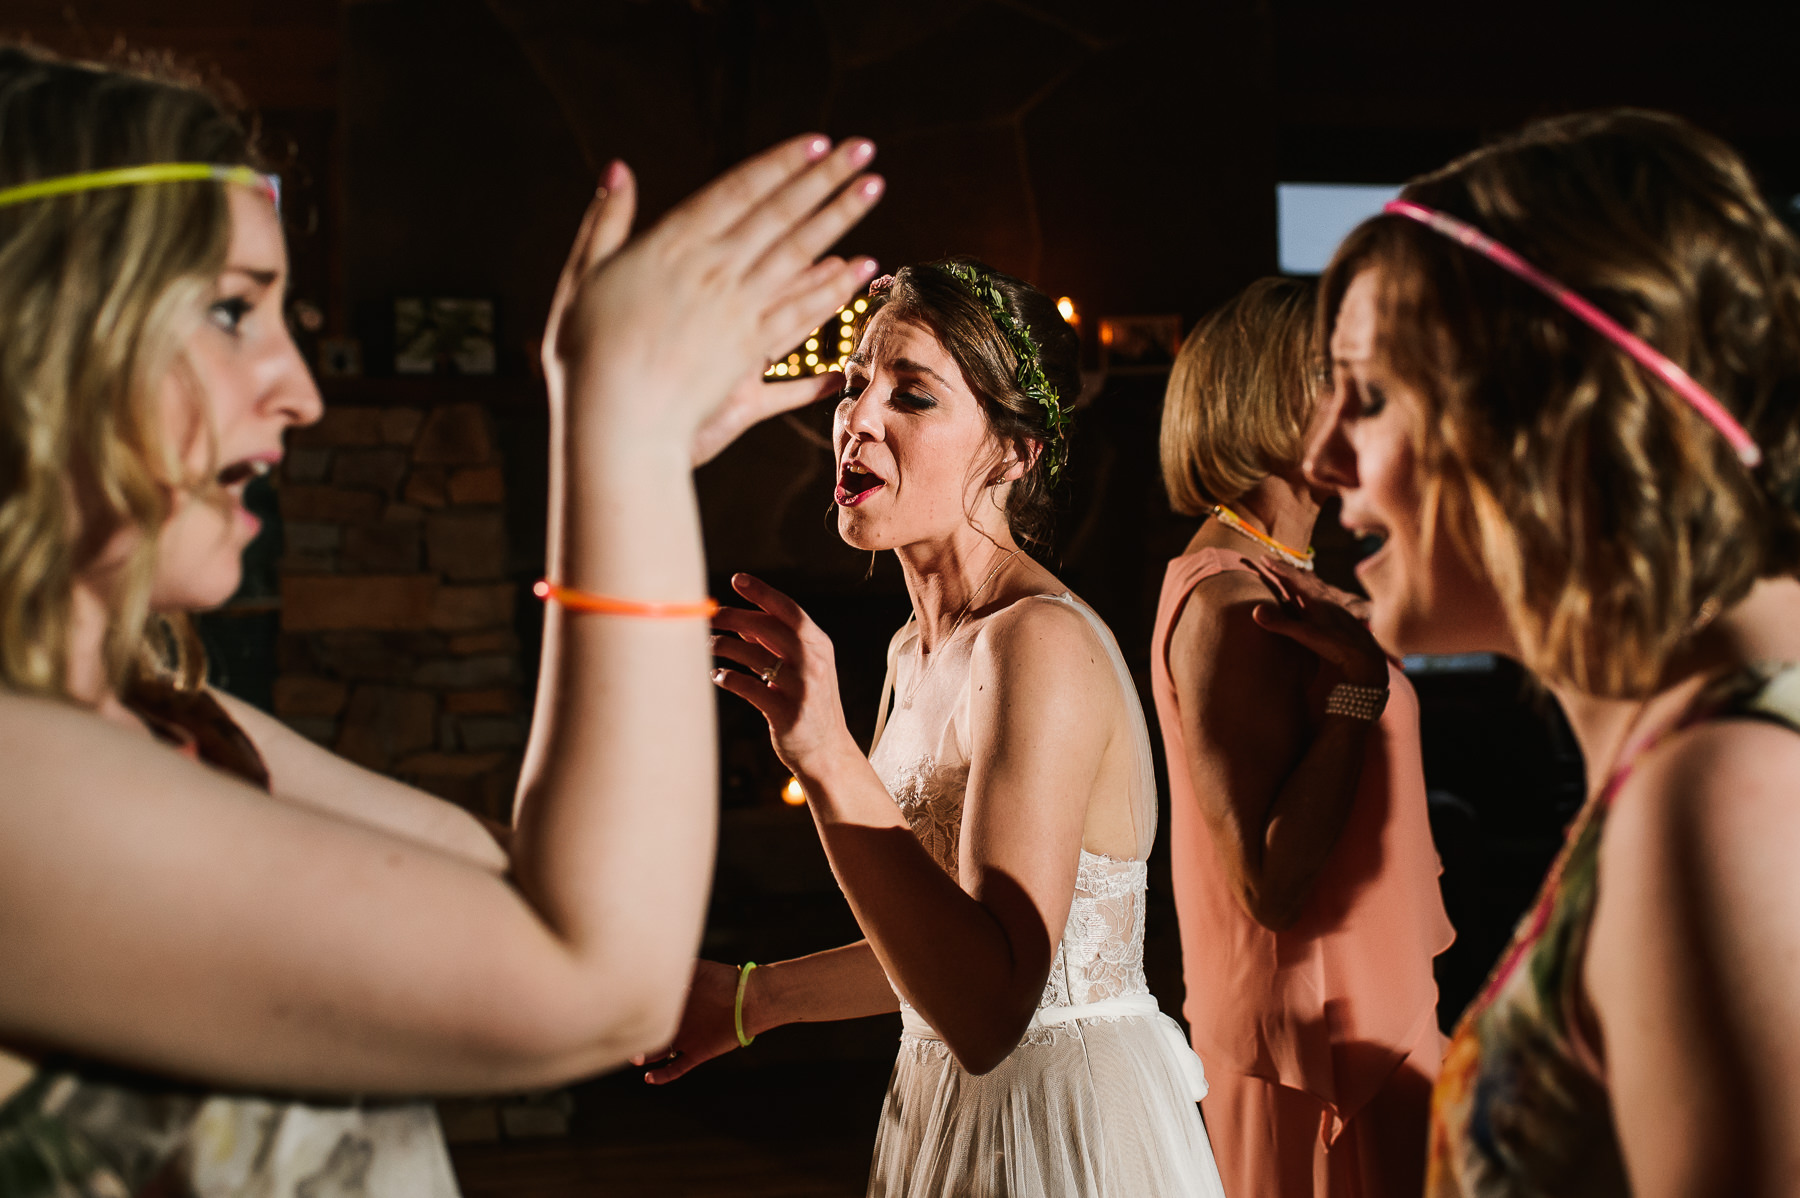 lake dale resort wedding bride and bridesmaids dancing